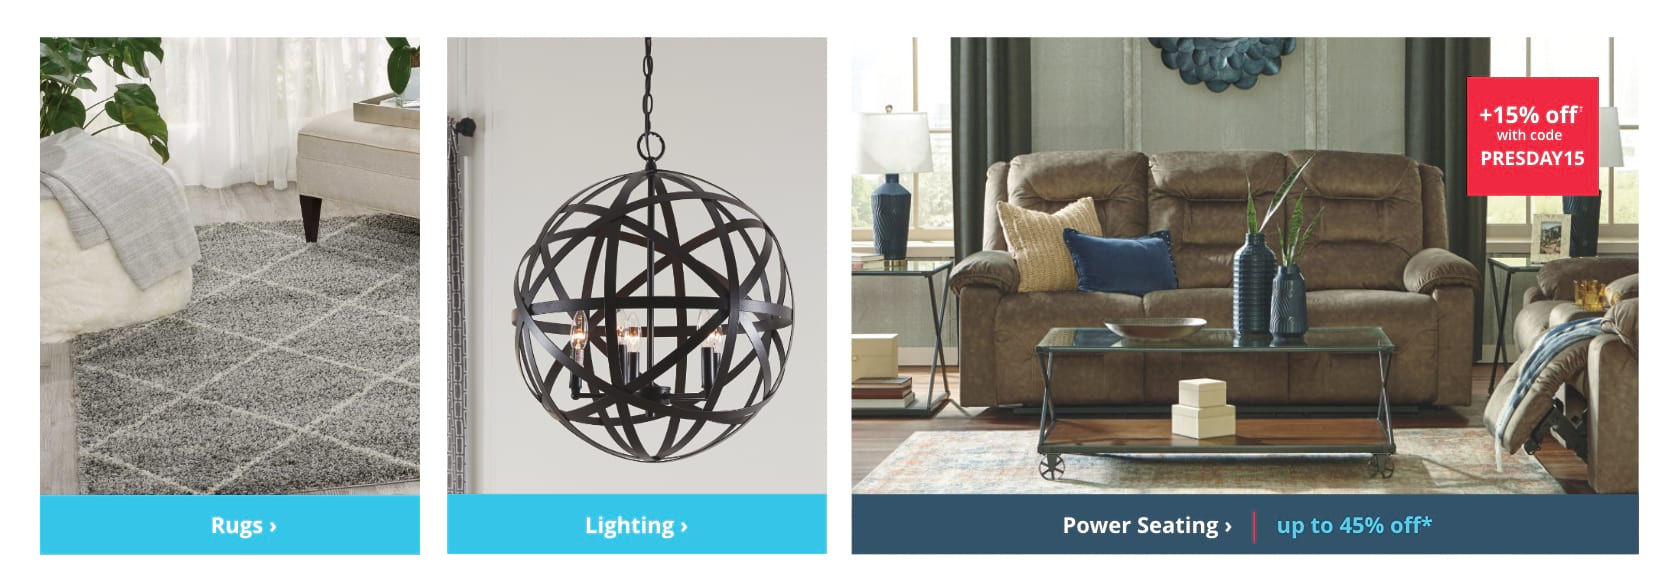 Shop Rugs, Lighting, Accent Tables